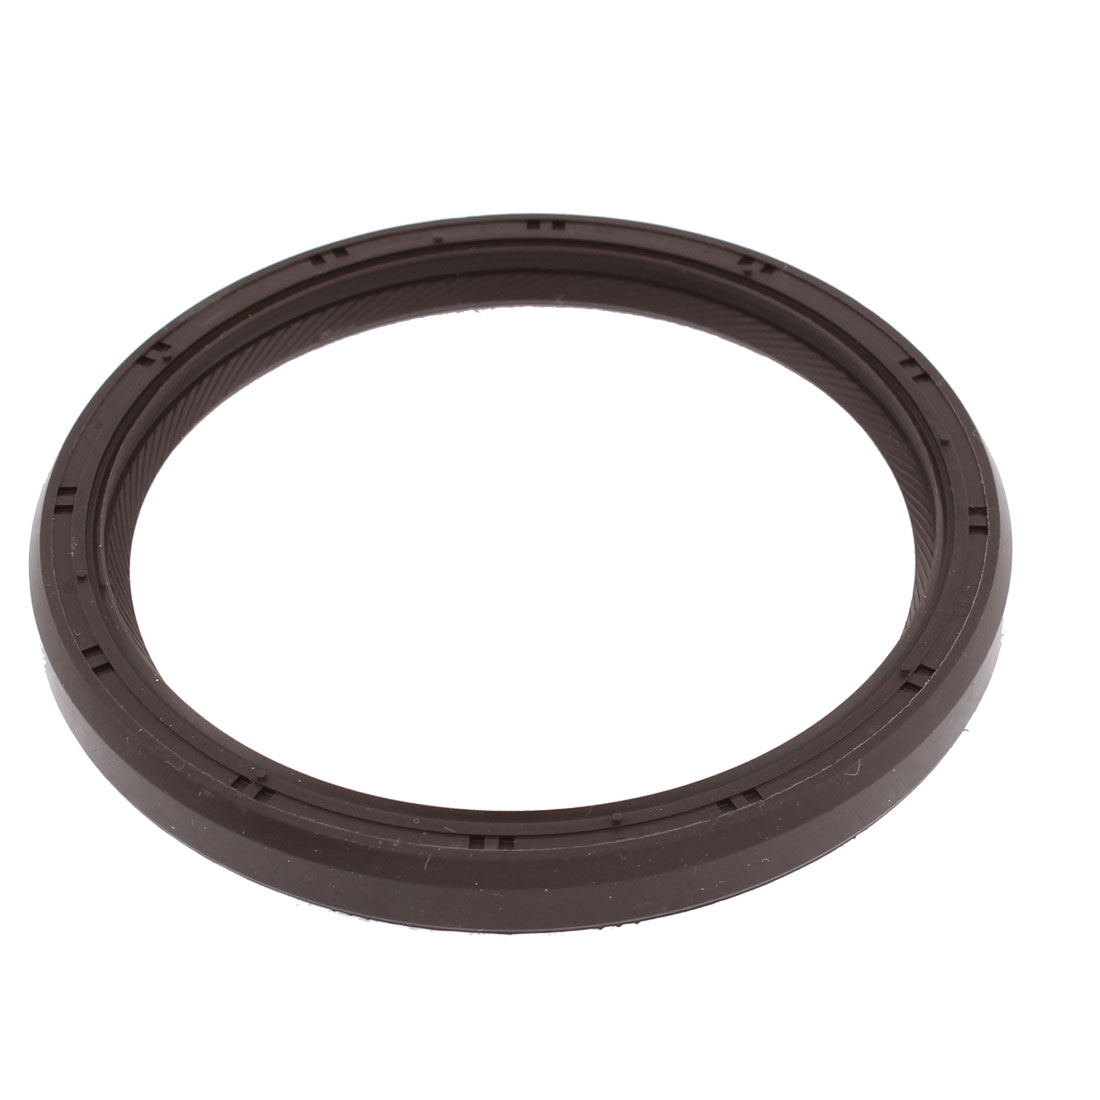 Car Auto Engine Crankshaft Ring Oil Seal Chocolate Color 80mm x 96mm x 9mm